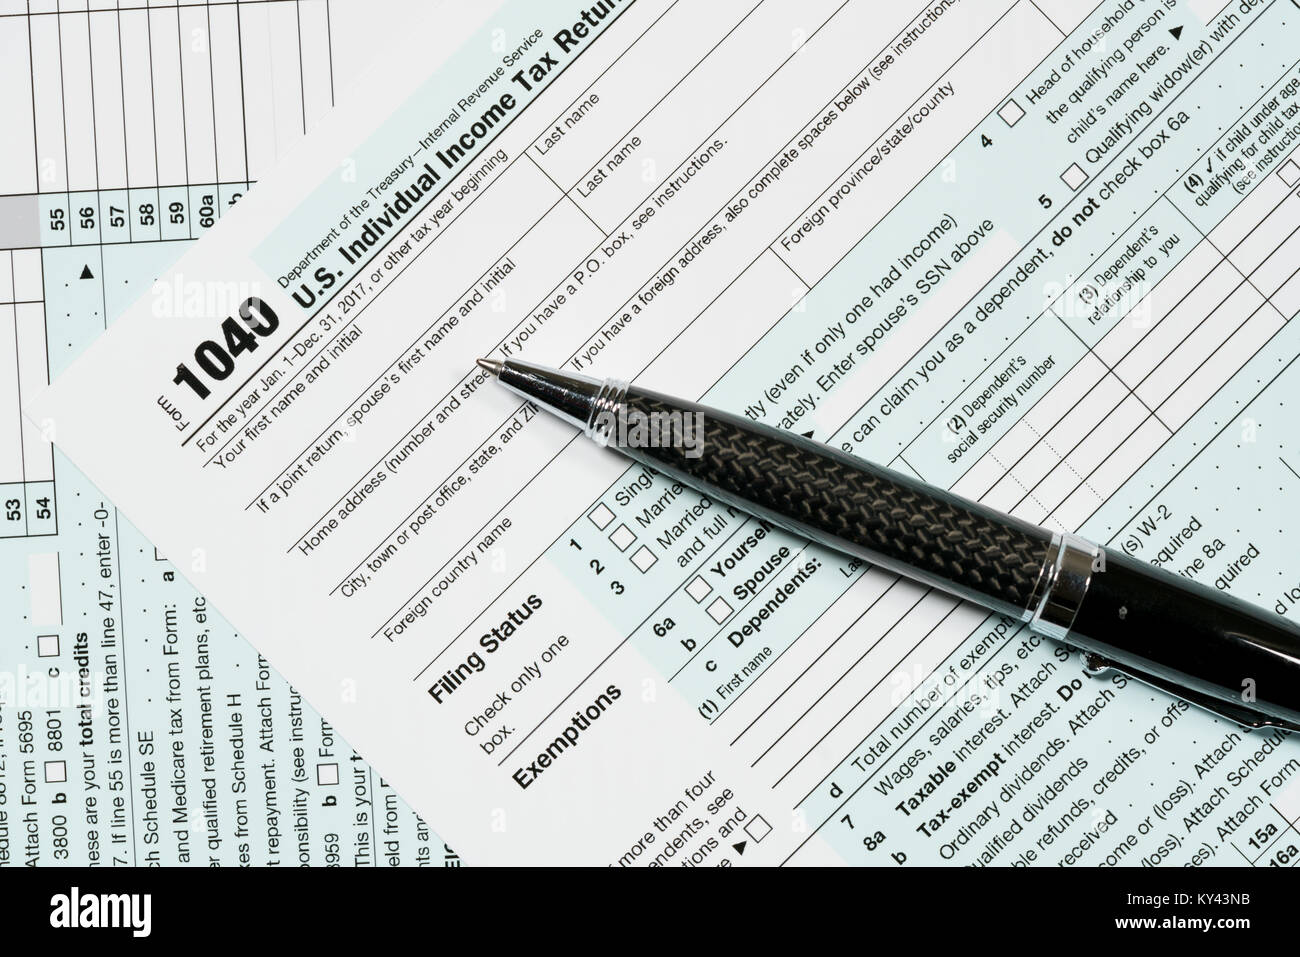 1040 tax form stock photos 1040 tax form stock images alamy pen laying on 2017 irs form 1040 stock image falaconquin